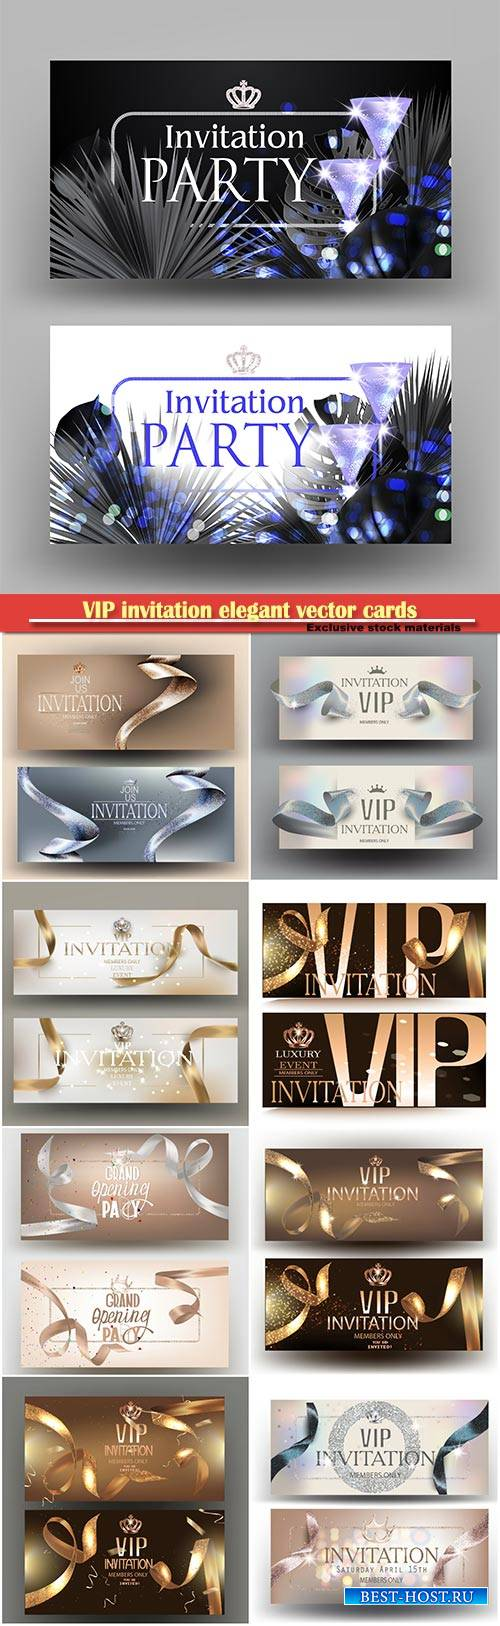 VIP invitation elegant vector cards with ribbons and pearl background